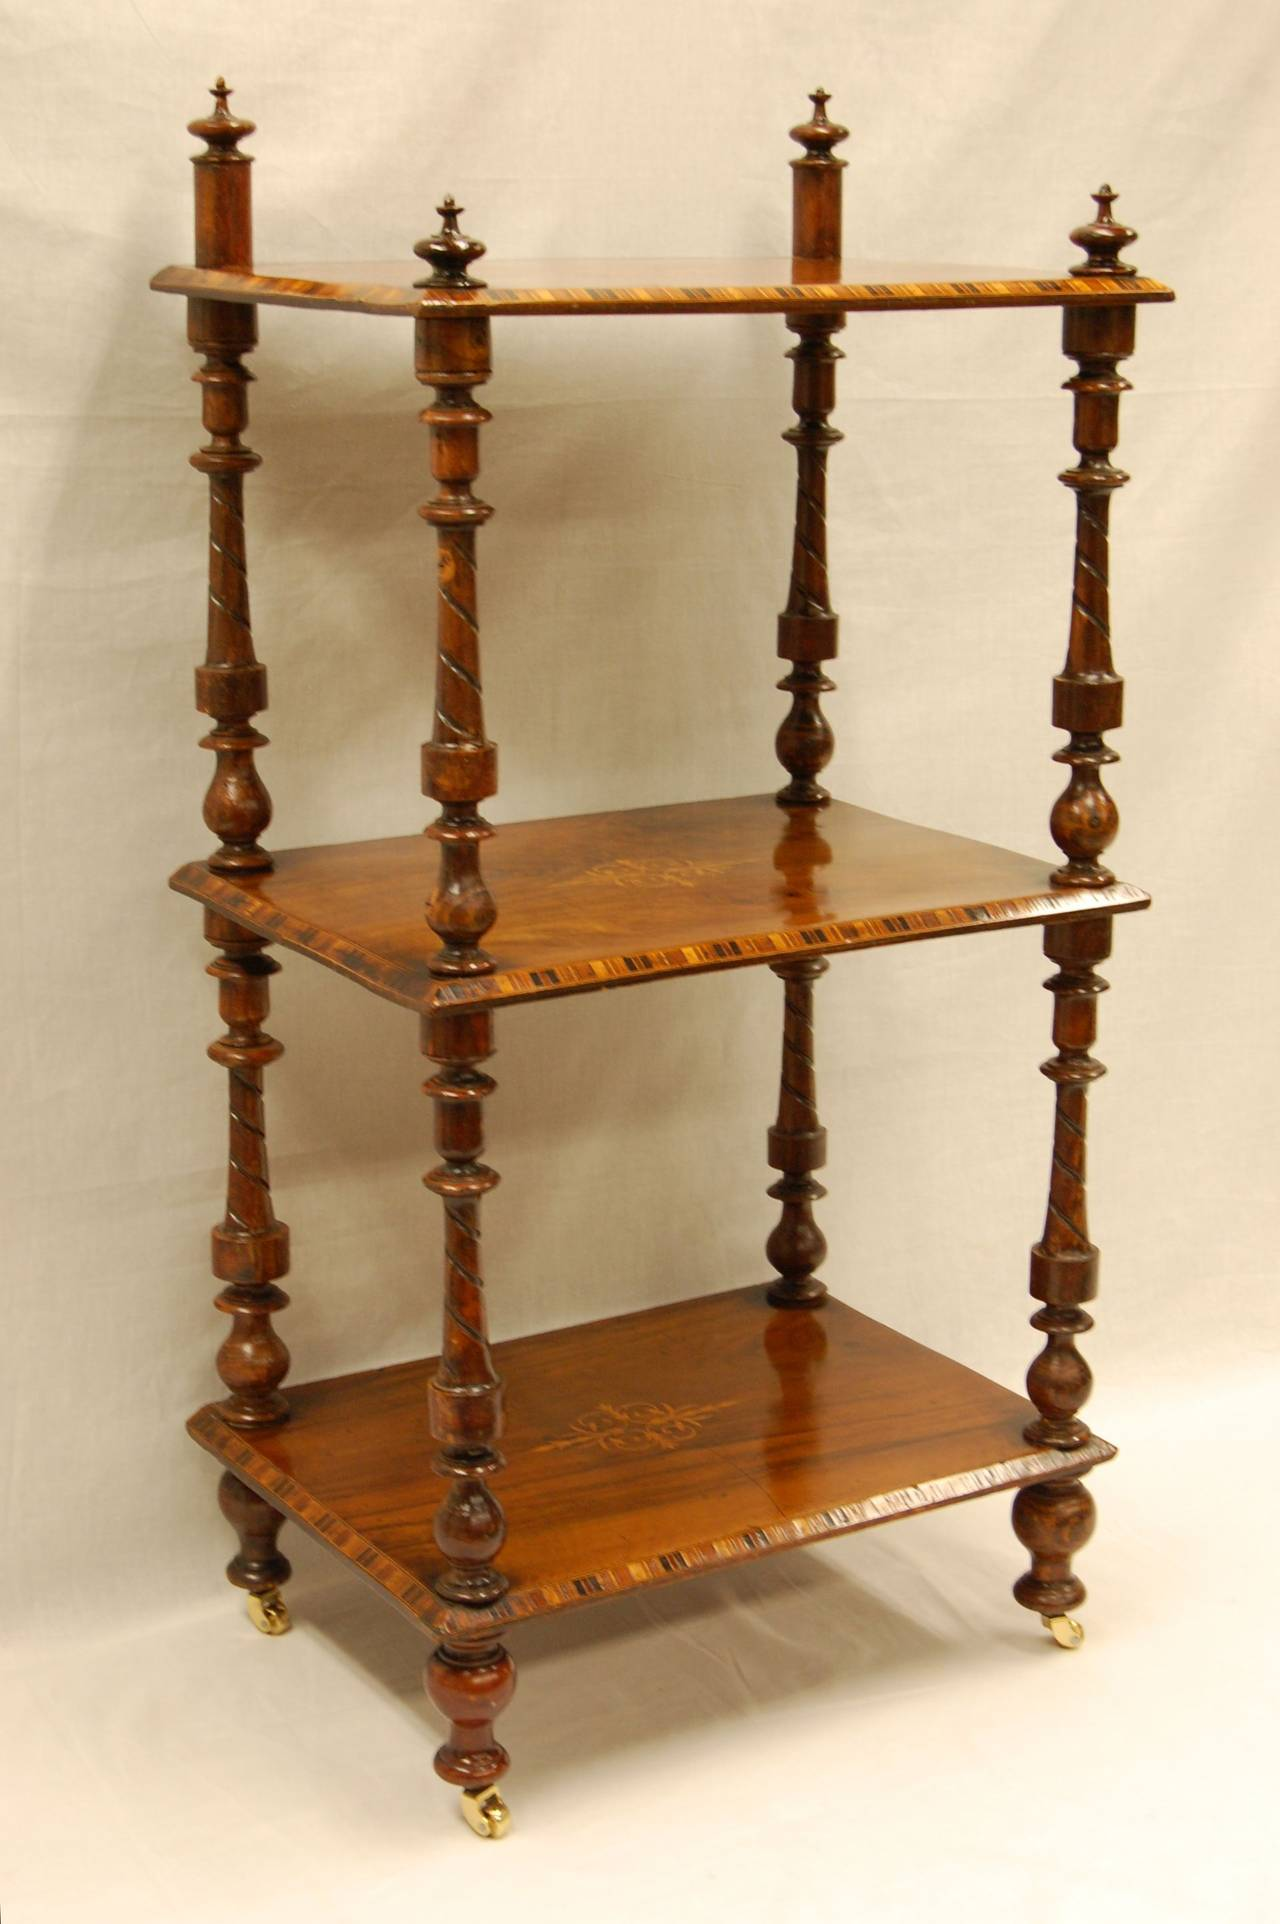 Early 19th century rosewood book stand with satinwood inlay, fancy turned posts and original finials. Excellent and tight condition. Possibly English or Italian.